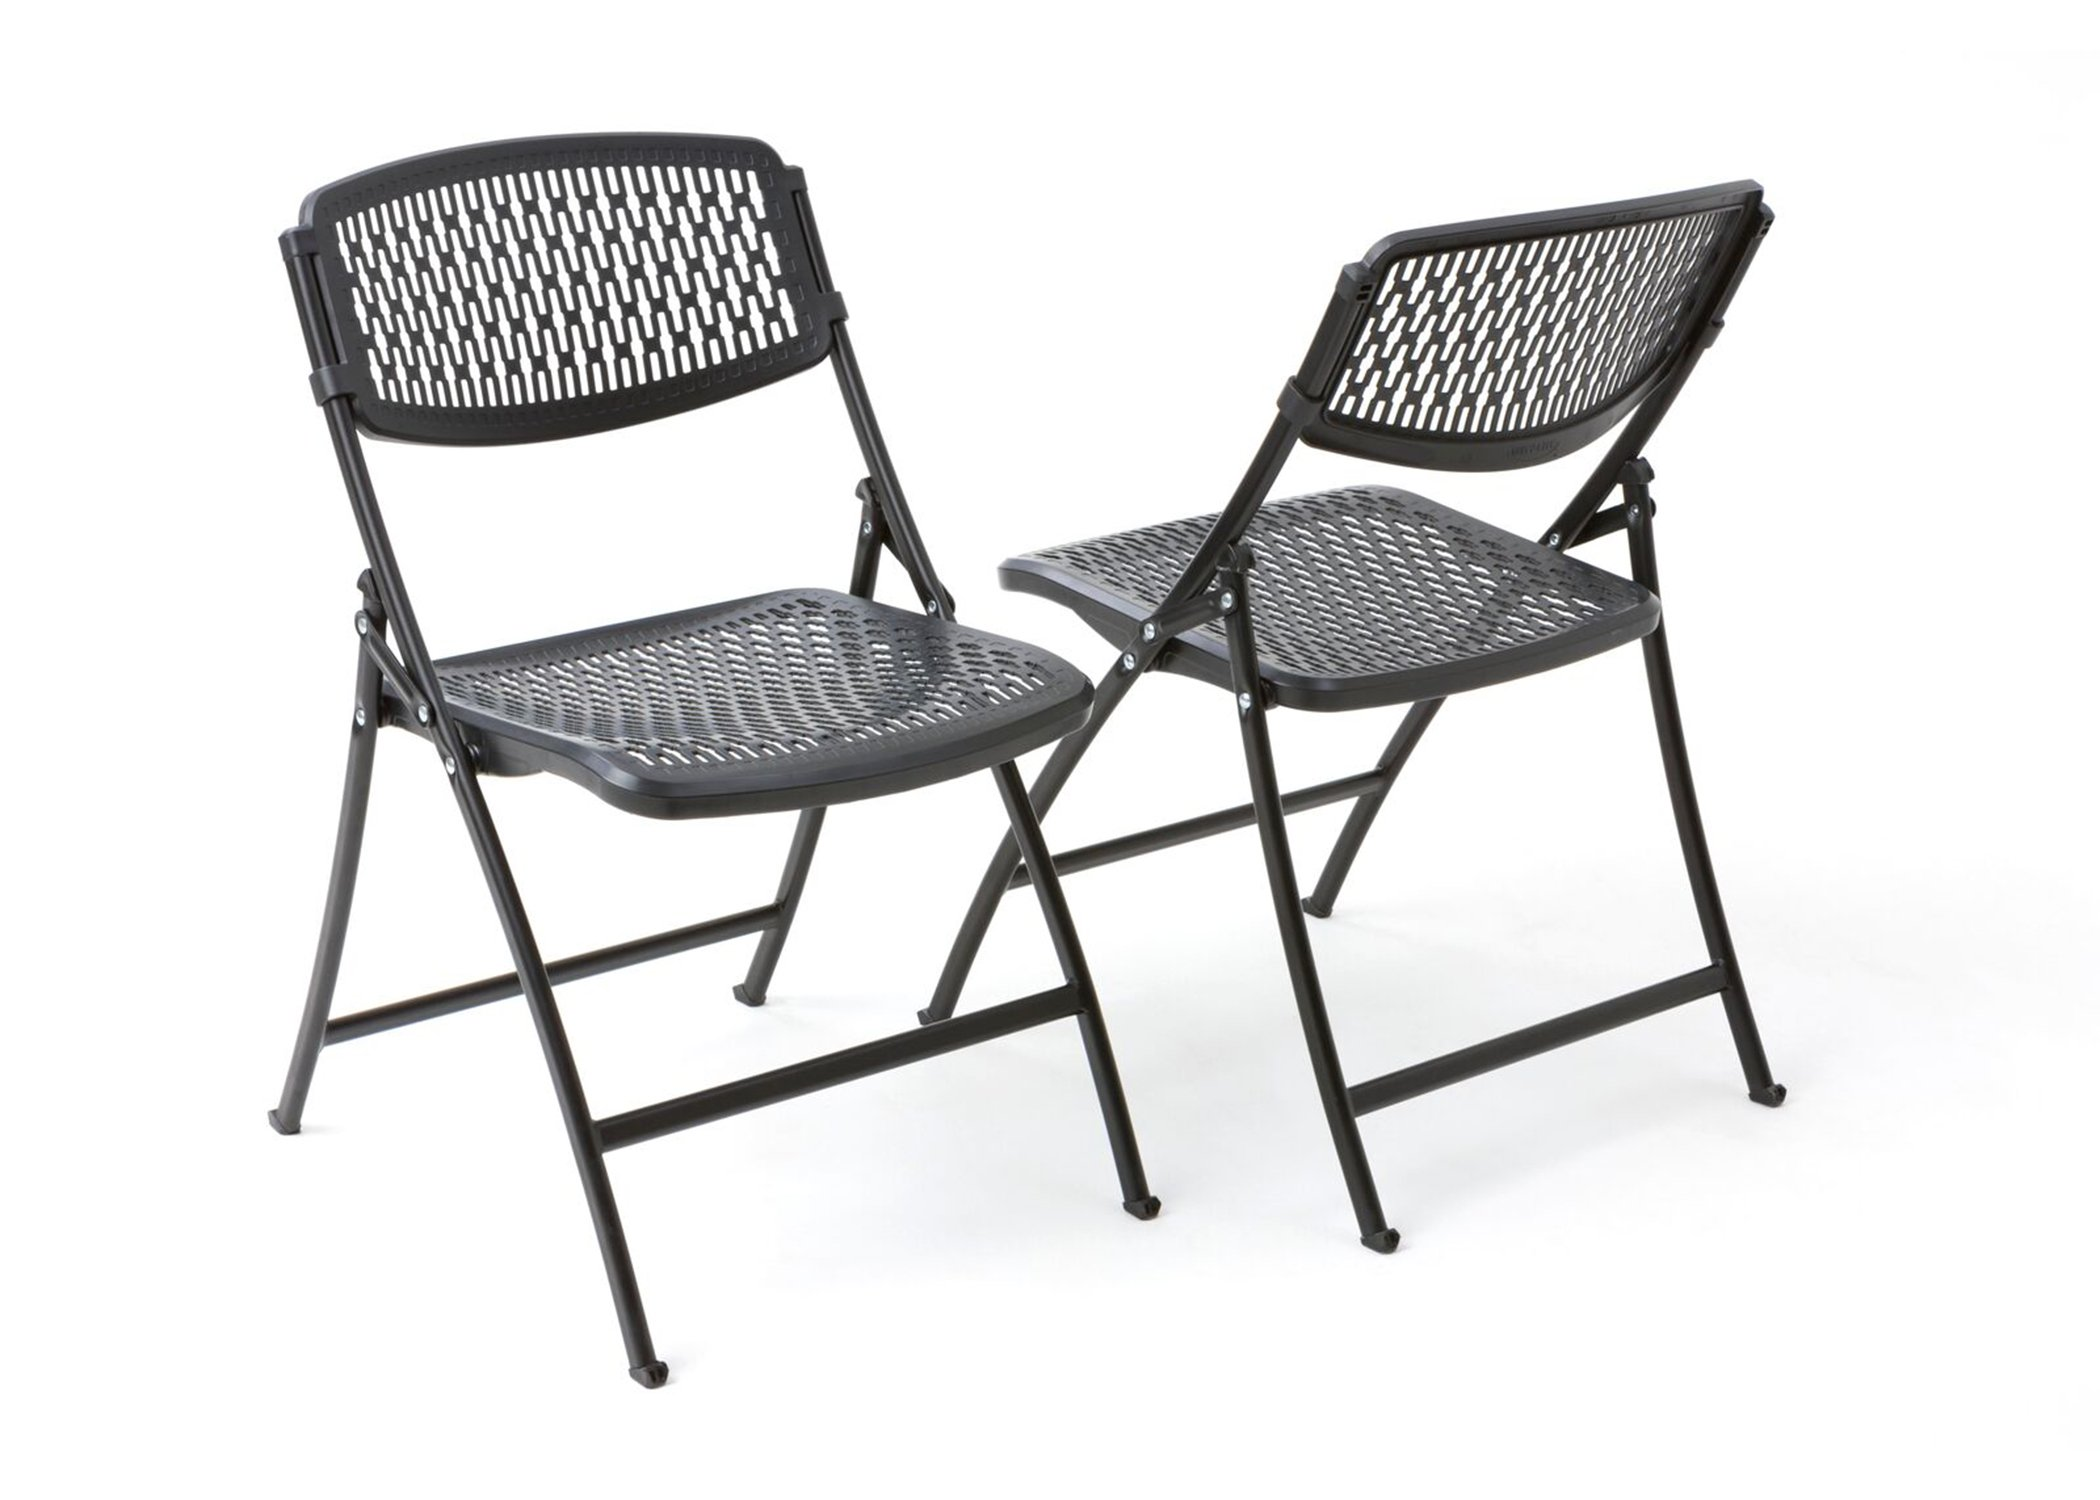 Mity-Lite Flex One Folding Chair, Black, 4-Pack by Flex One Folding Chair